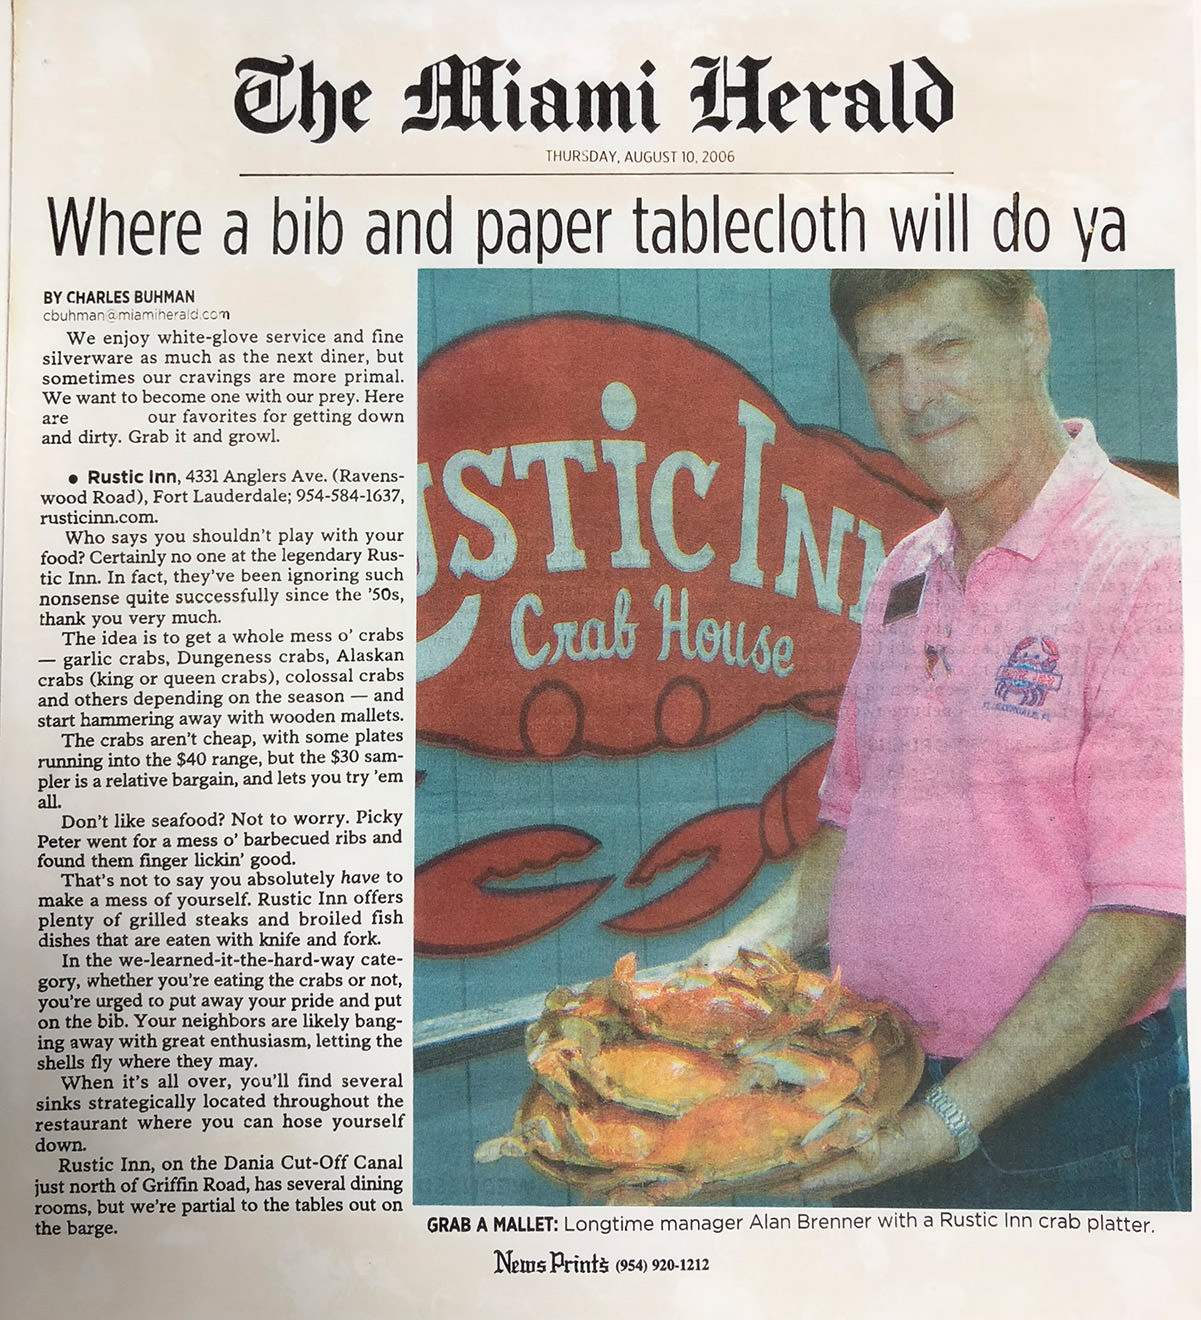 The Miami Herald - Where a bib and paper tablecloth will do ya